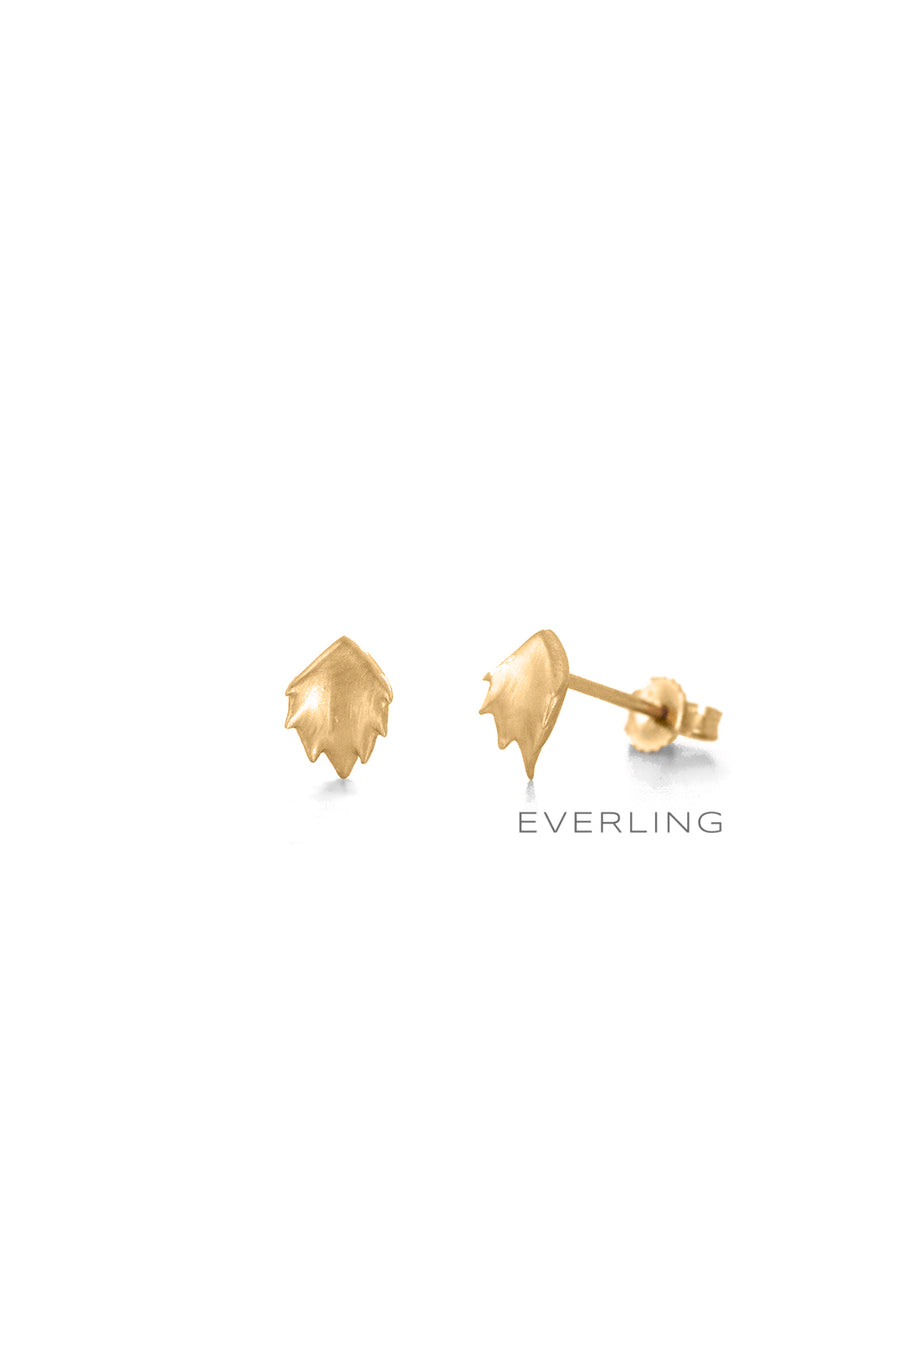 Recycled 14K Yellow Gold Bear Paw Design Stud Earrings. #studearrings #organicjewelry  www.everlingjewelry.com